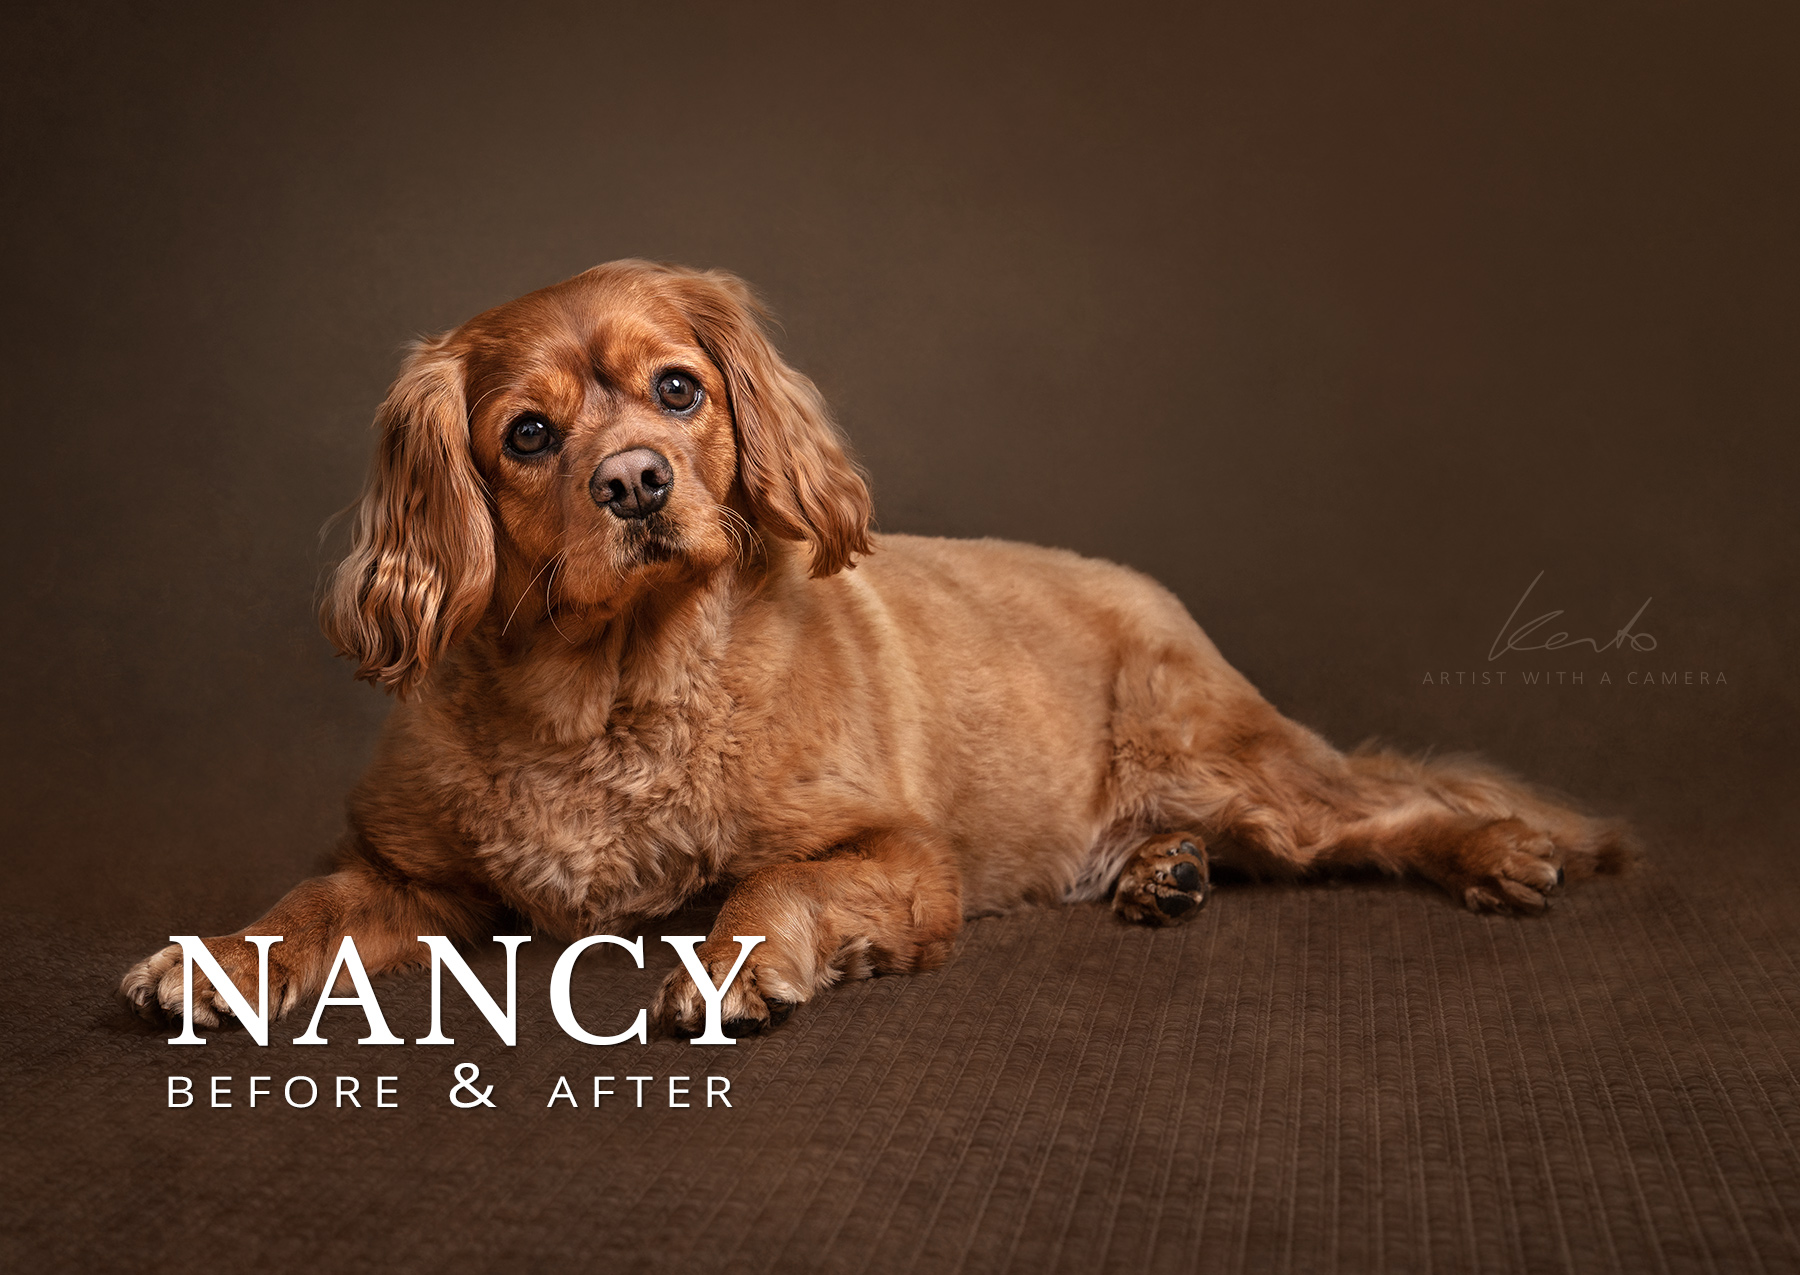 Nancy before and after